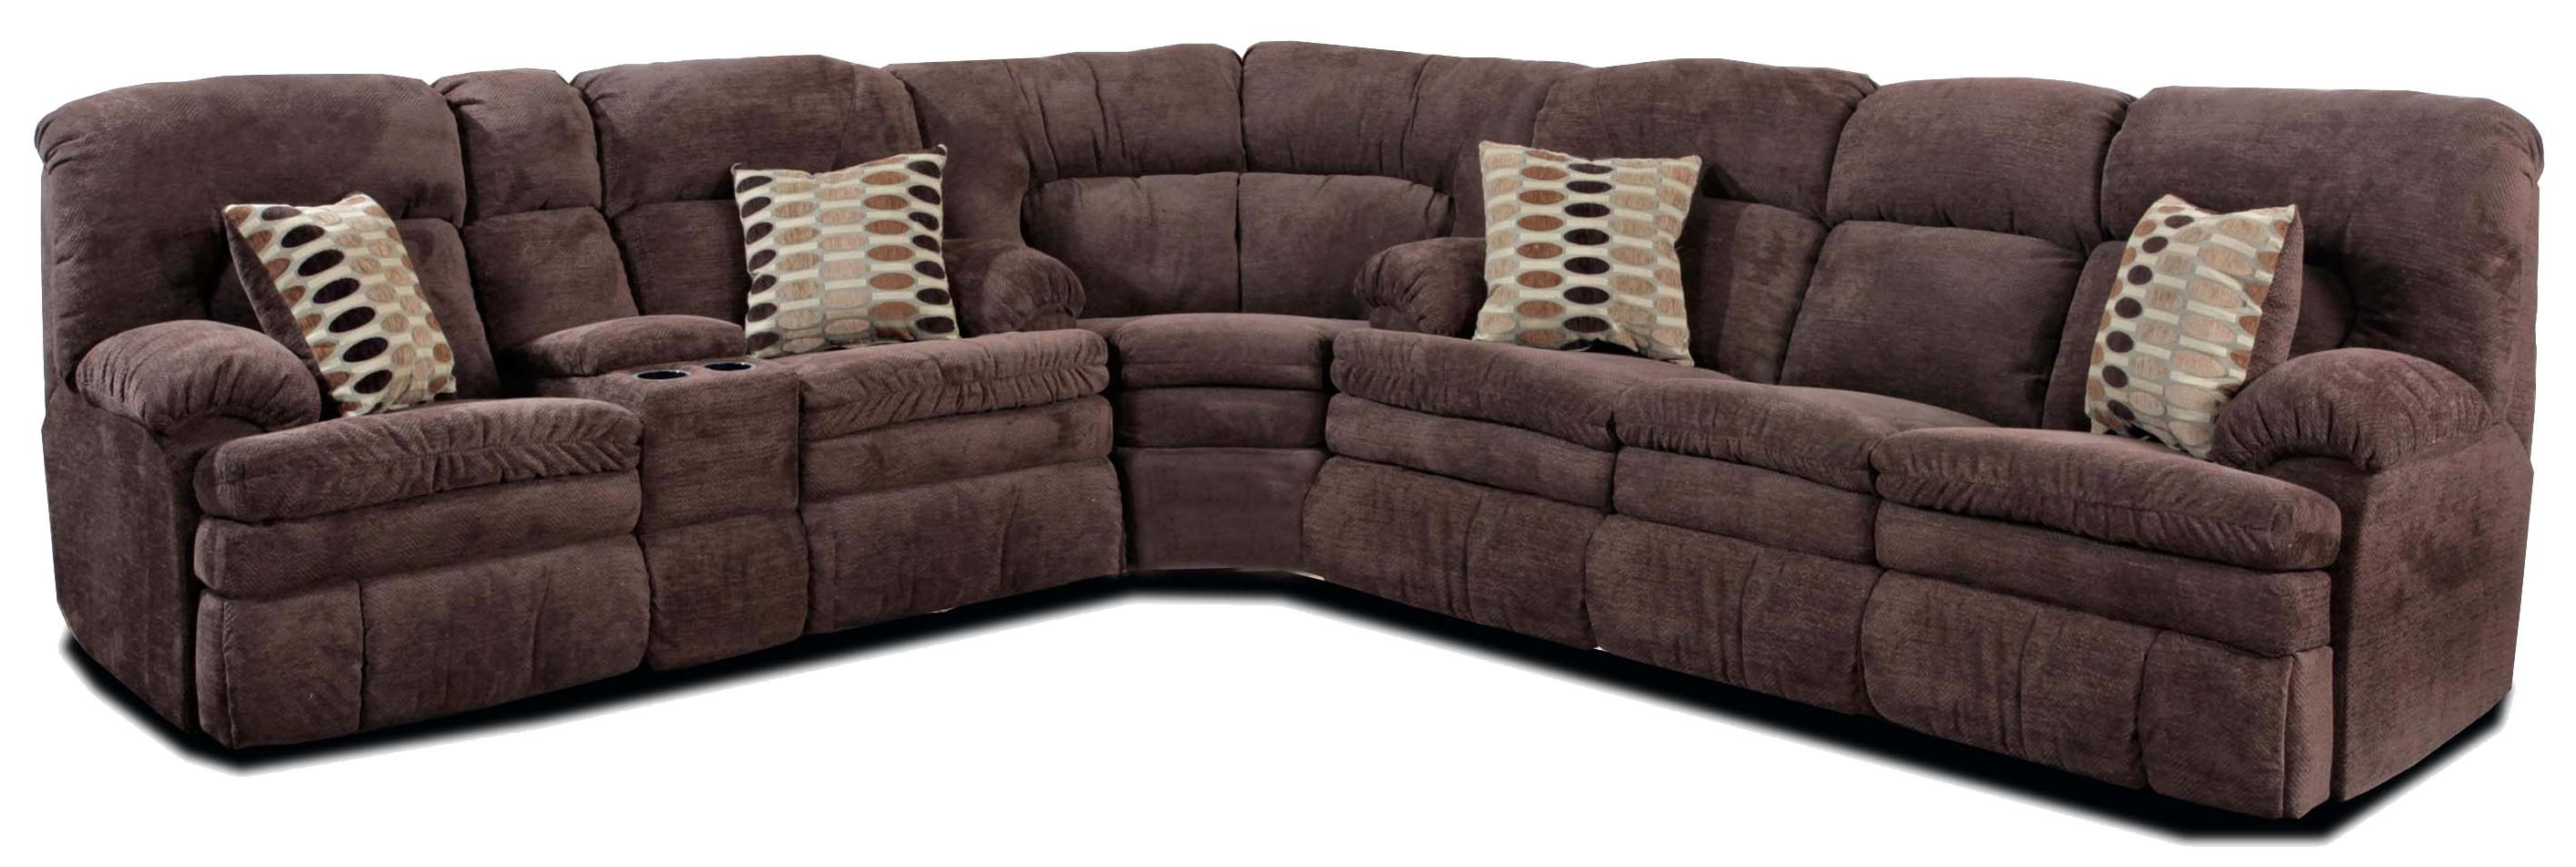 HomeStretch 103 Chocolate Series Reclining Corner Sectional Sofa With Left  Side Cup Holder Console For Family Rooms   Royal Furniture   Reclining  Sectional ...